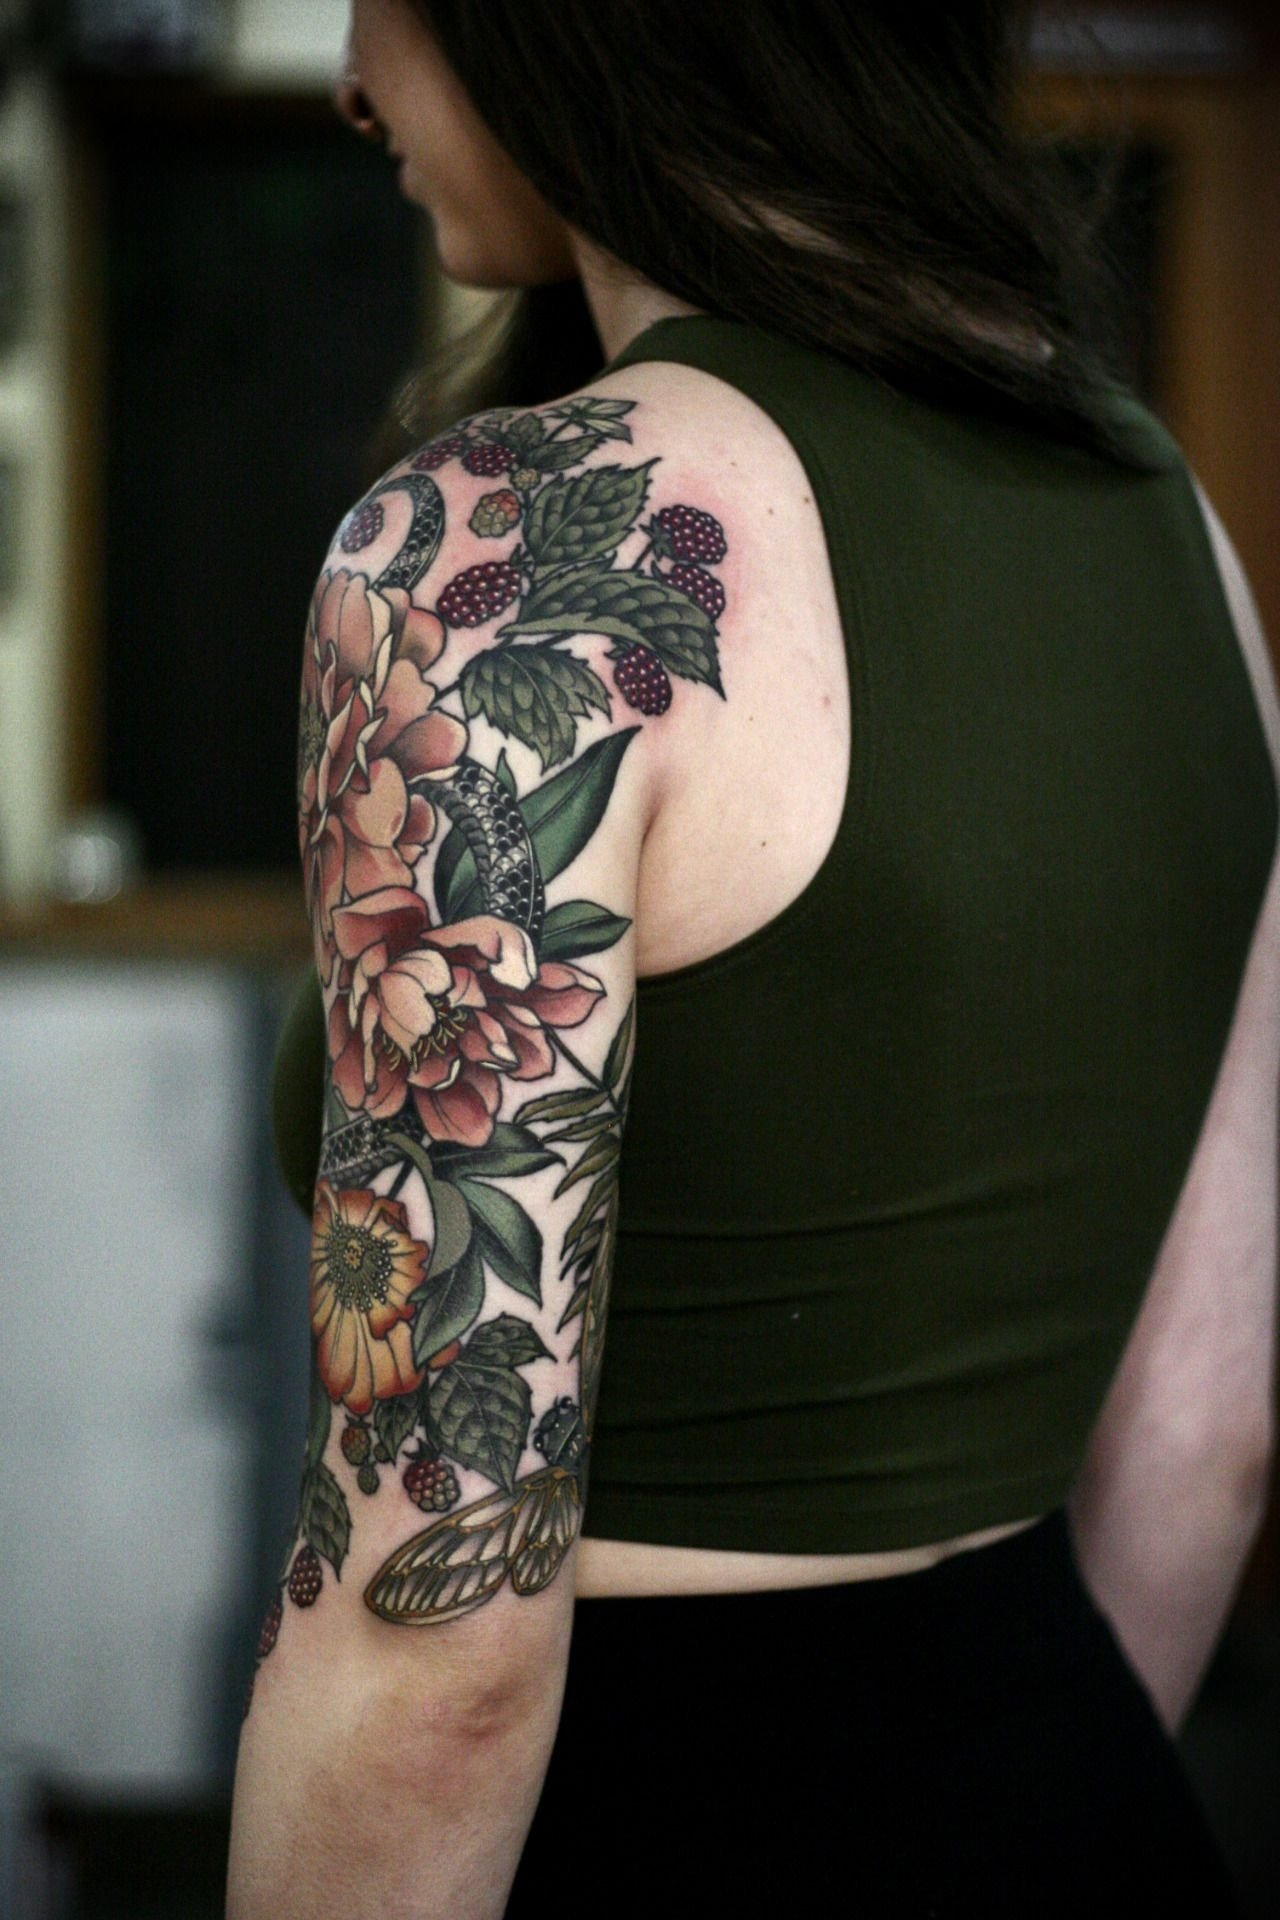 10 Beautiful Back Of Arm Tattoo Ideas garden half sleeve ive been working on since september on makenzie